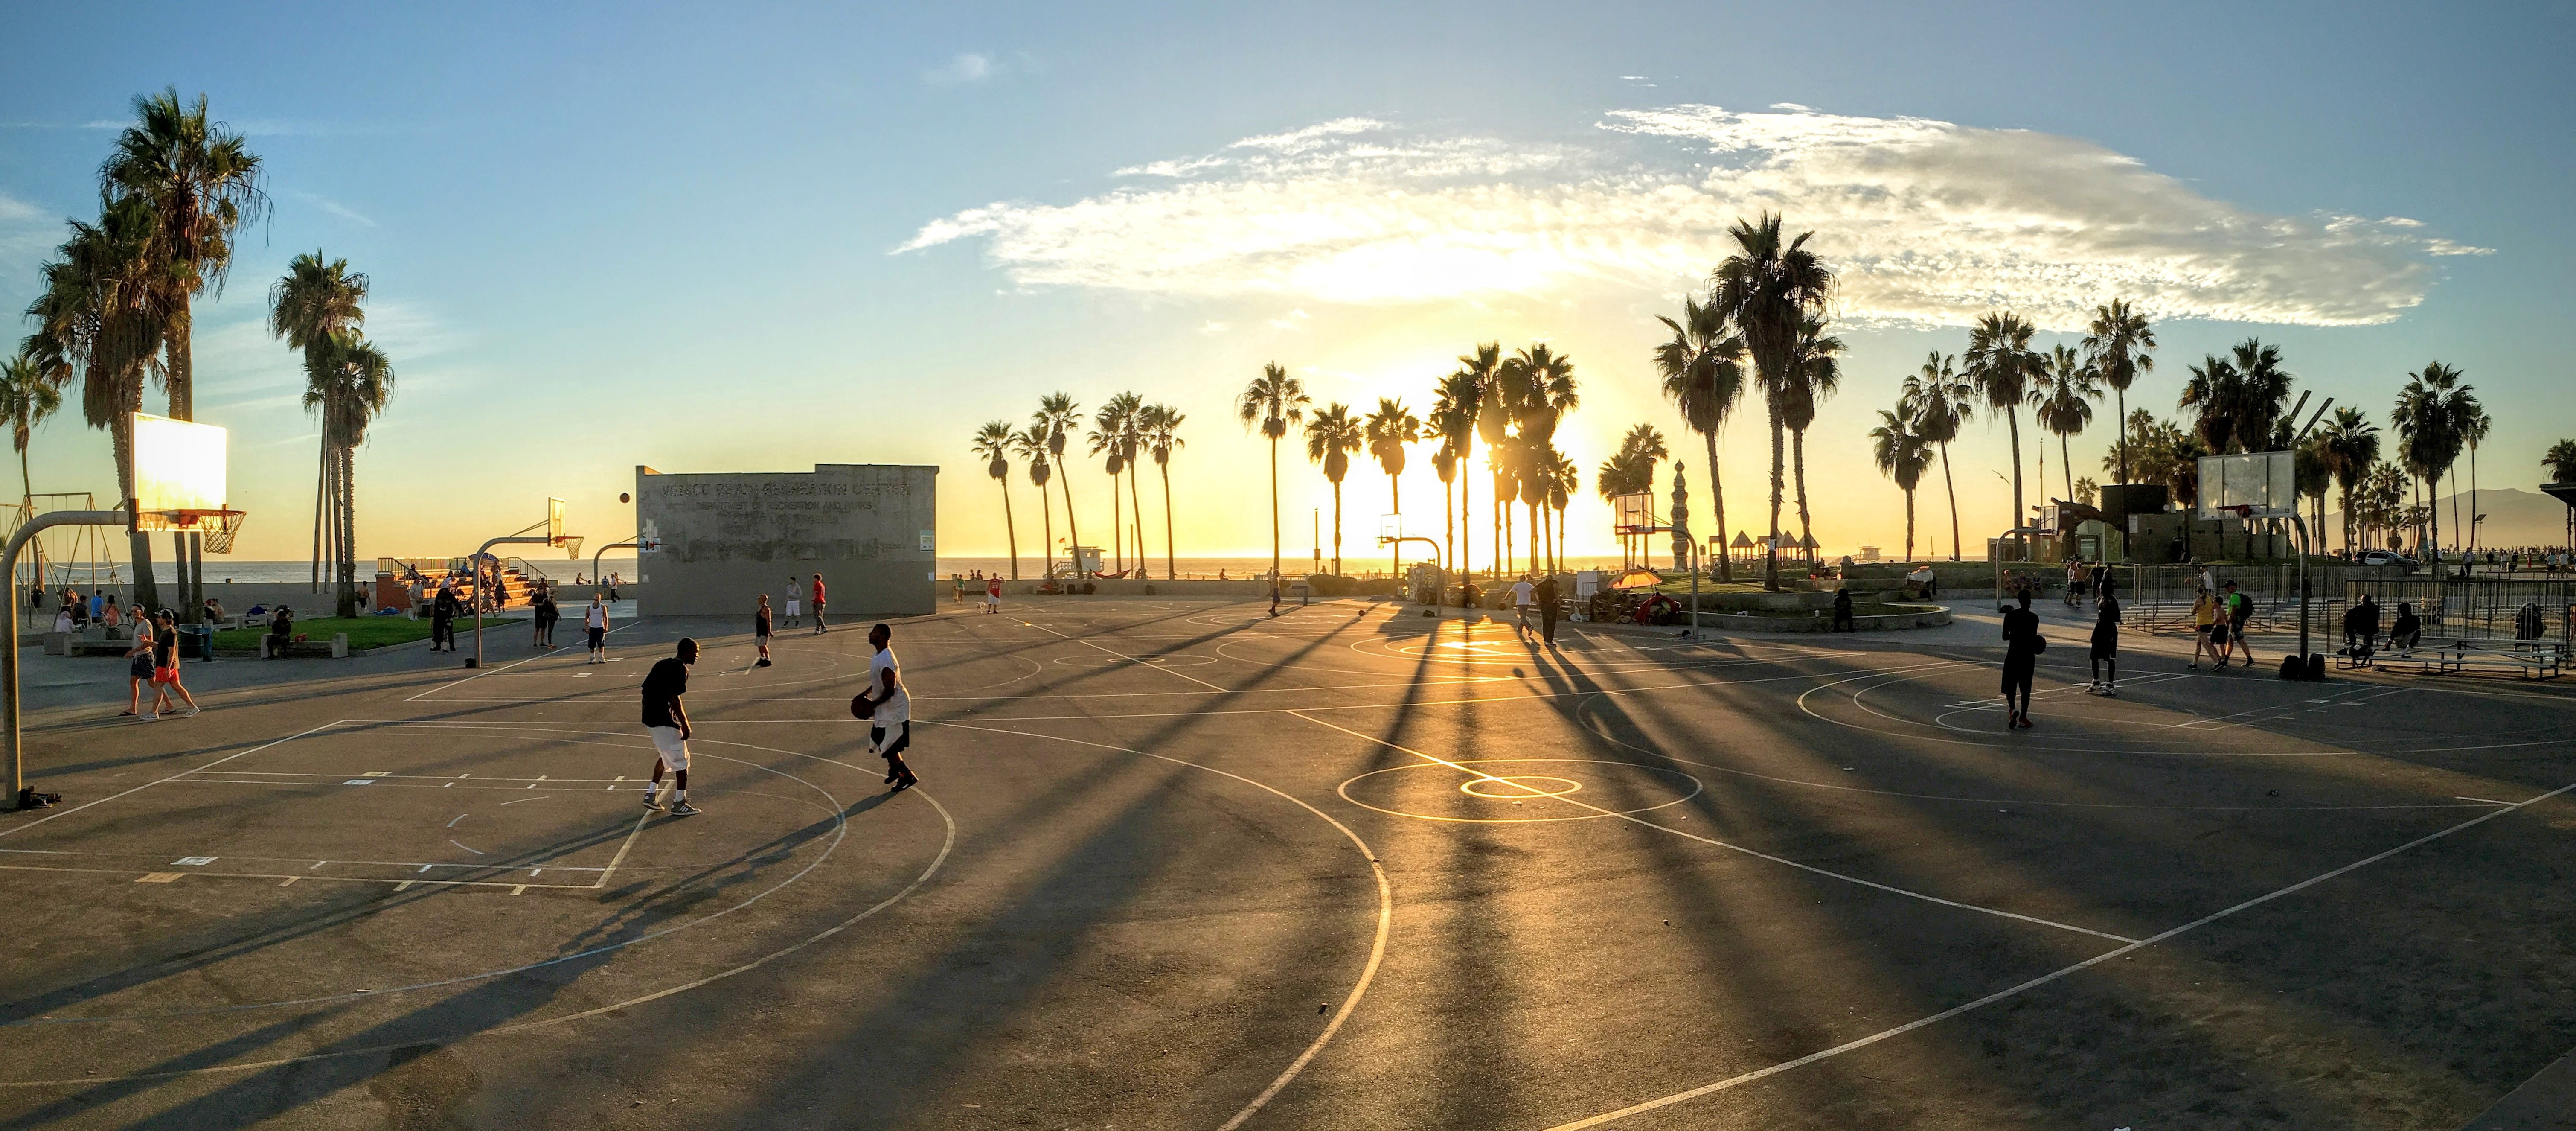 Basketball court, Activity, Basketball, Court, Healthy, HQ Photo